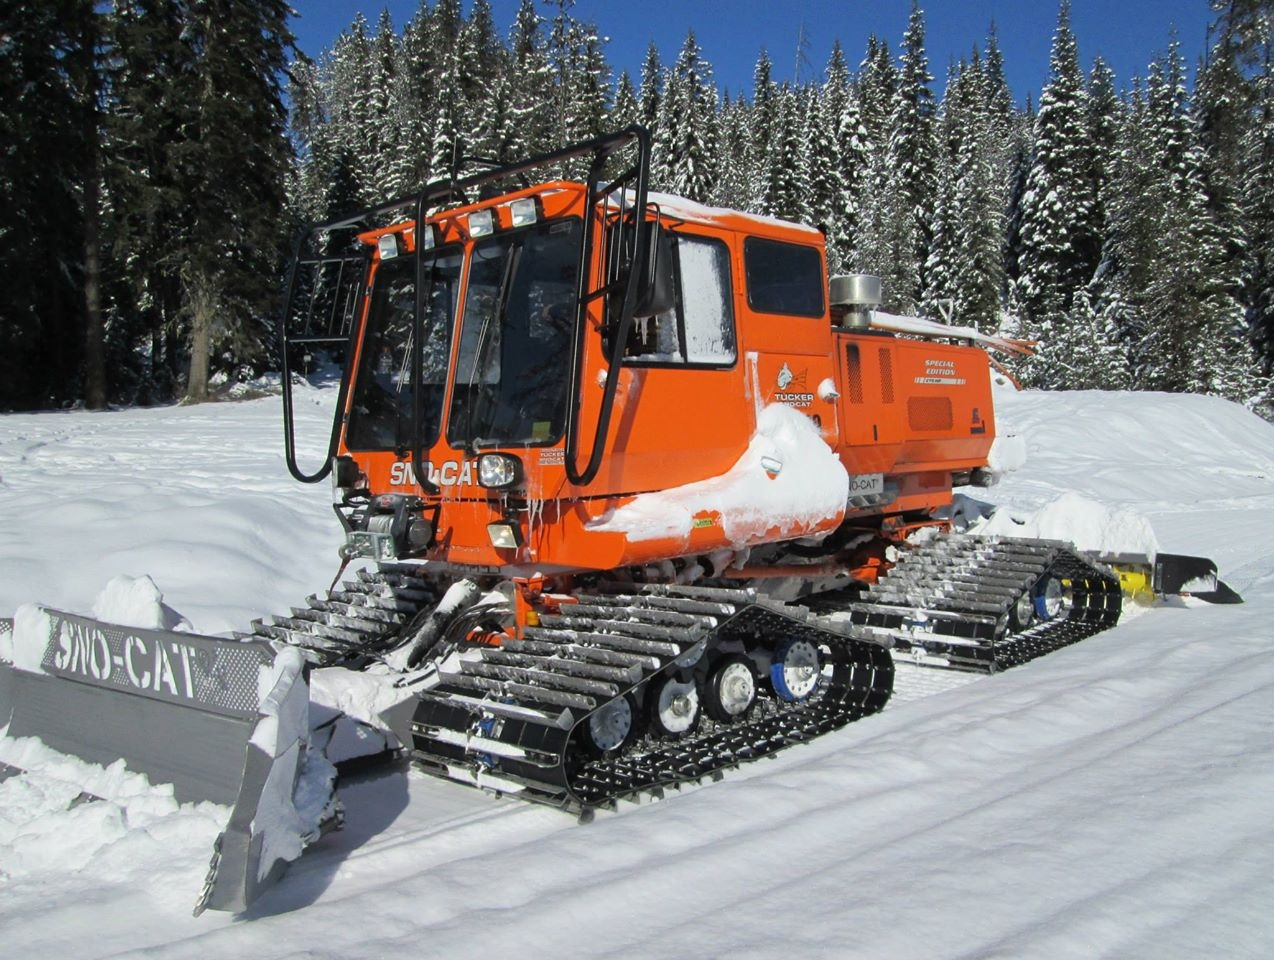 With 7,200 miles of trails in the state, around 42,000 registered snowmobiles, and $26 of the registration money used for grooming, there isn't enough money in the program to keep the trails in pristine condition. Latah SnoDrifters photo.